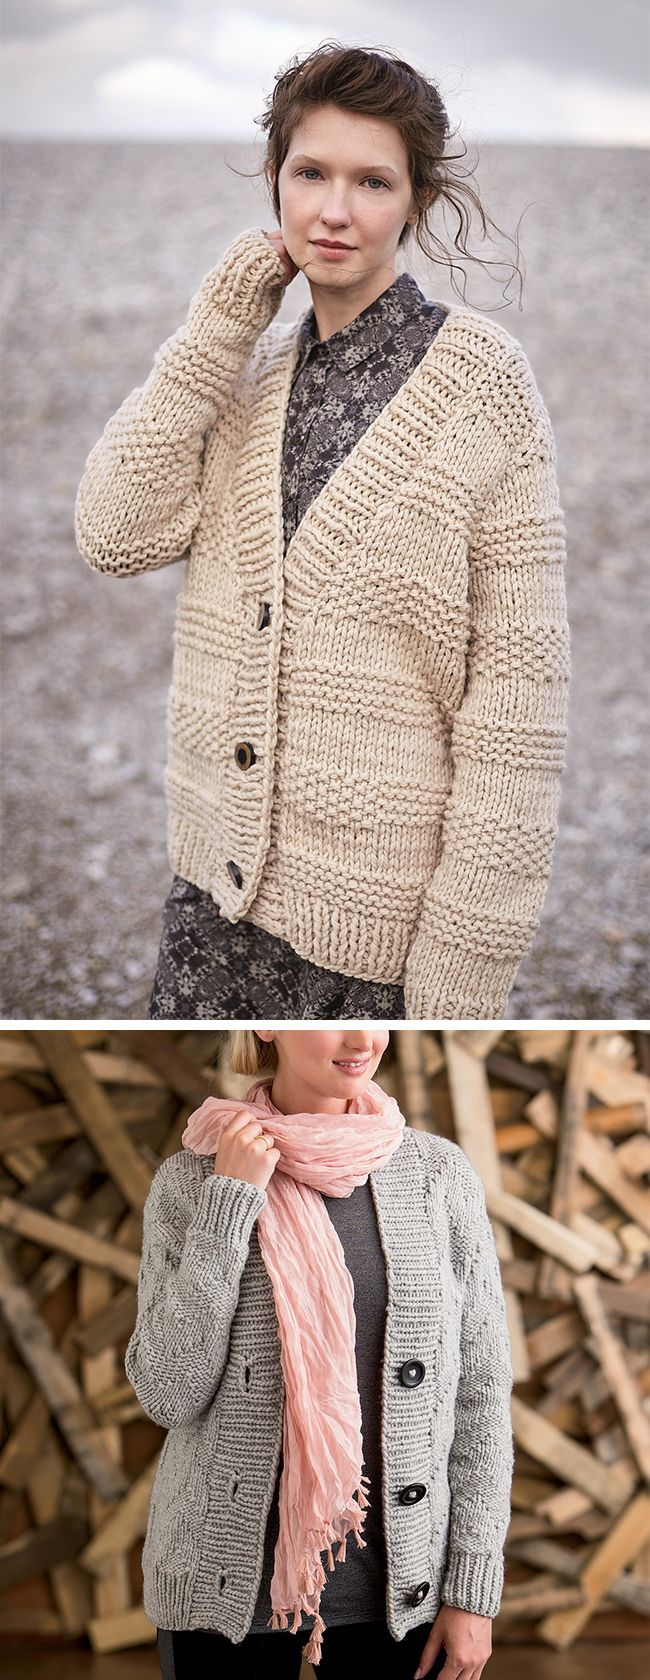 Between the bleak weather here in Tennessee and the skeins of bronze-colored bulky merino flirting with me from my worktable, I'm preoccupied with bulky cardigan patterns right now. In additi…